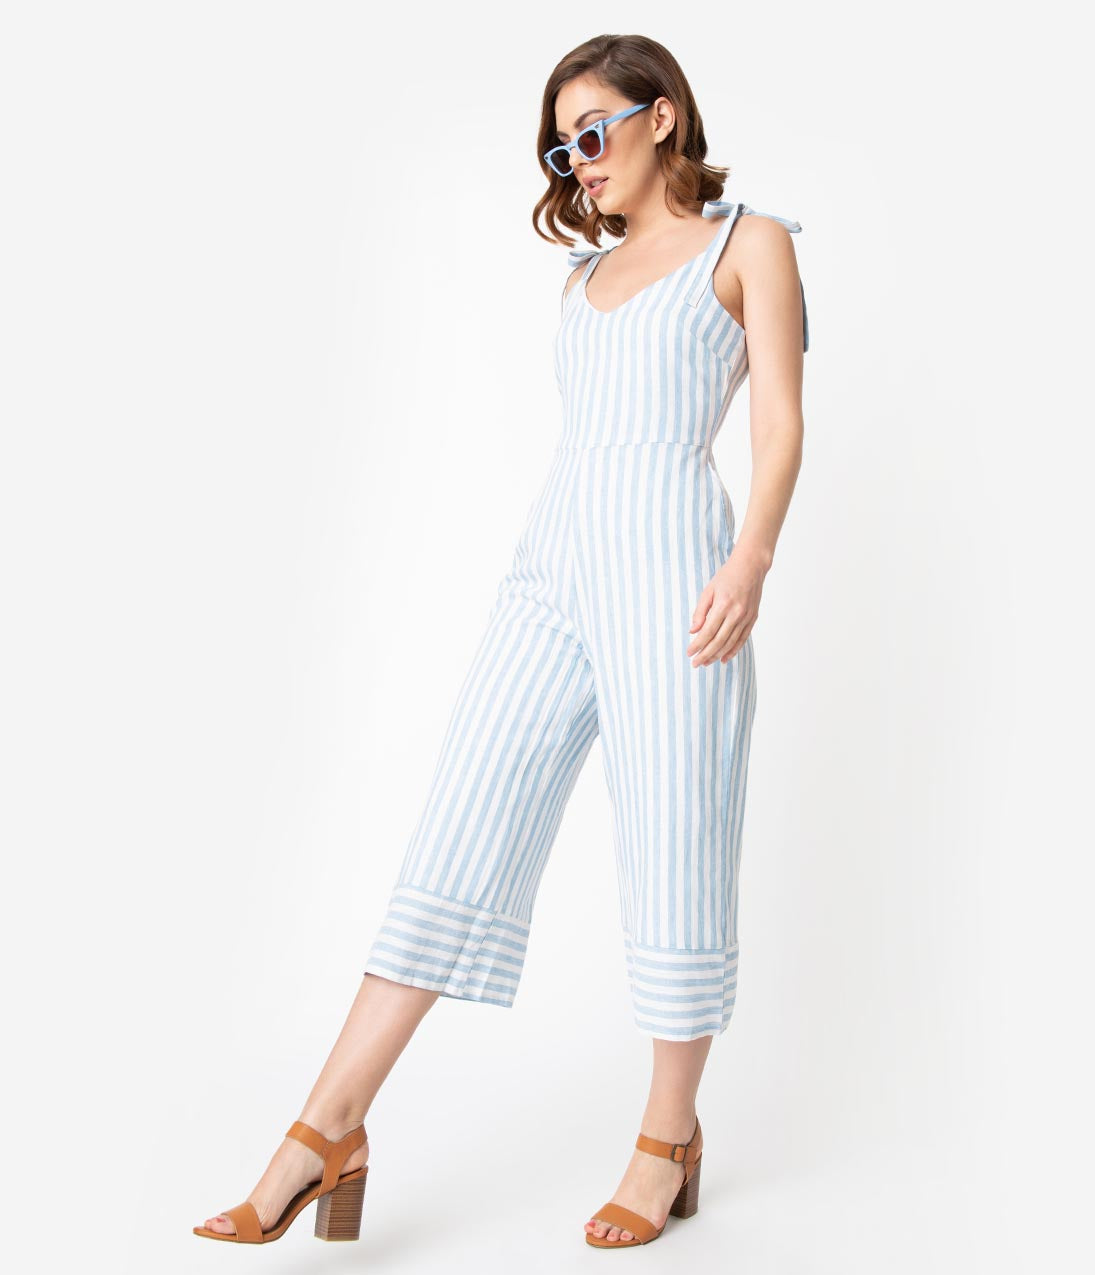 Vintage High Waisted Trousers, Sailor Pants, Jeans Retro Style Light Blue  White Striped Linen Culotte Jumpsuit $68.00 AT vintagedancer.com